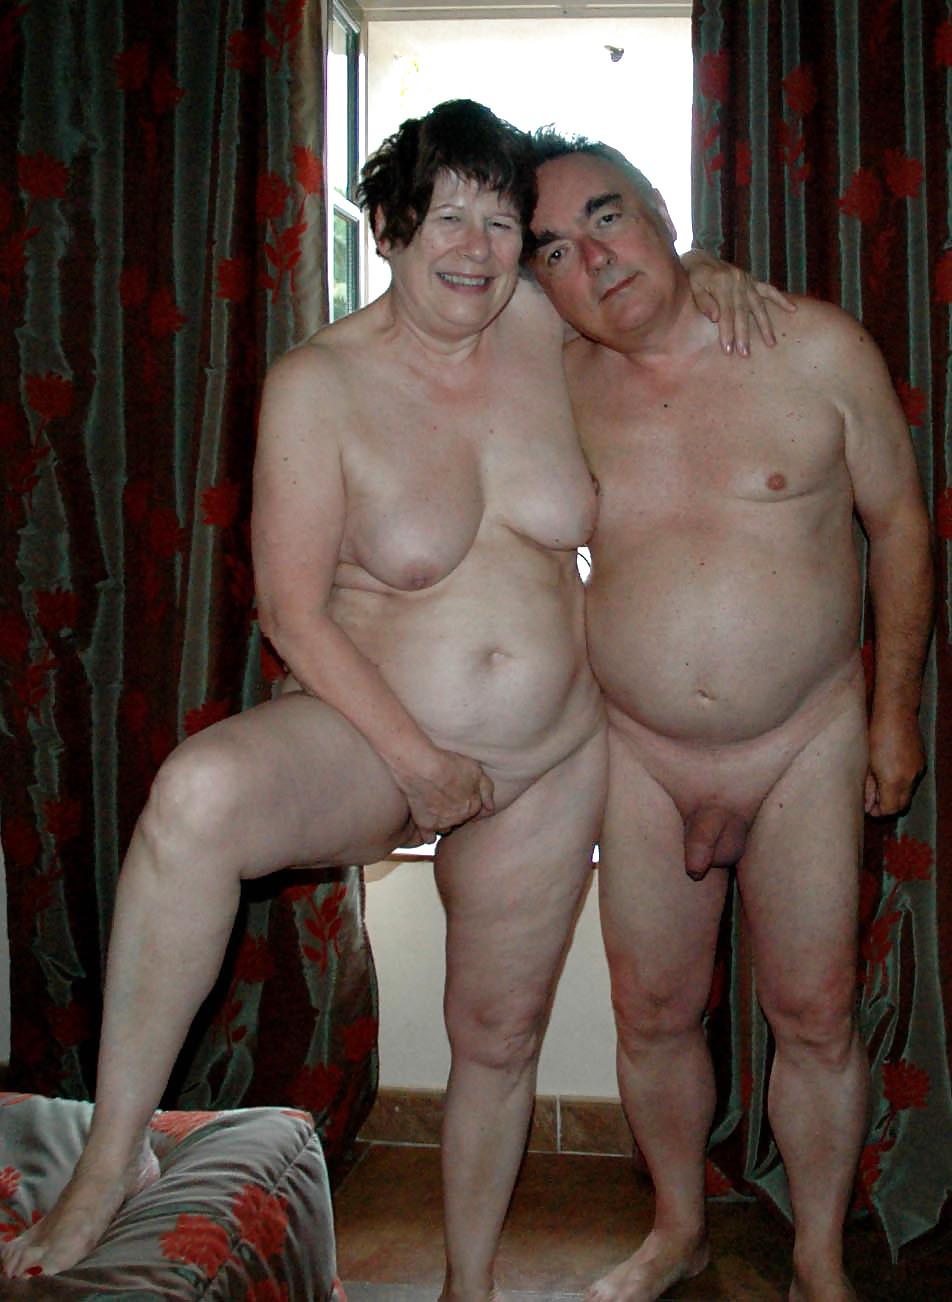 Naked pictures mature couples of Category:Nude standing